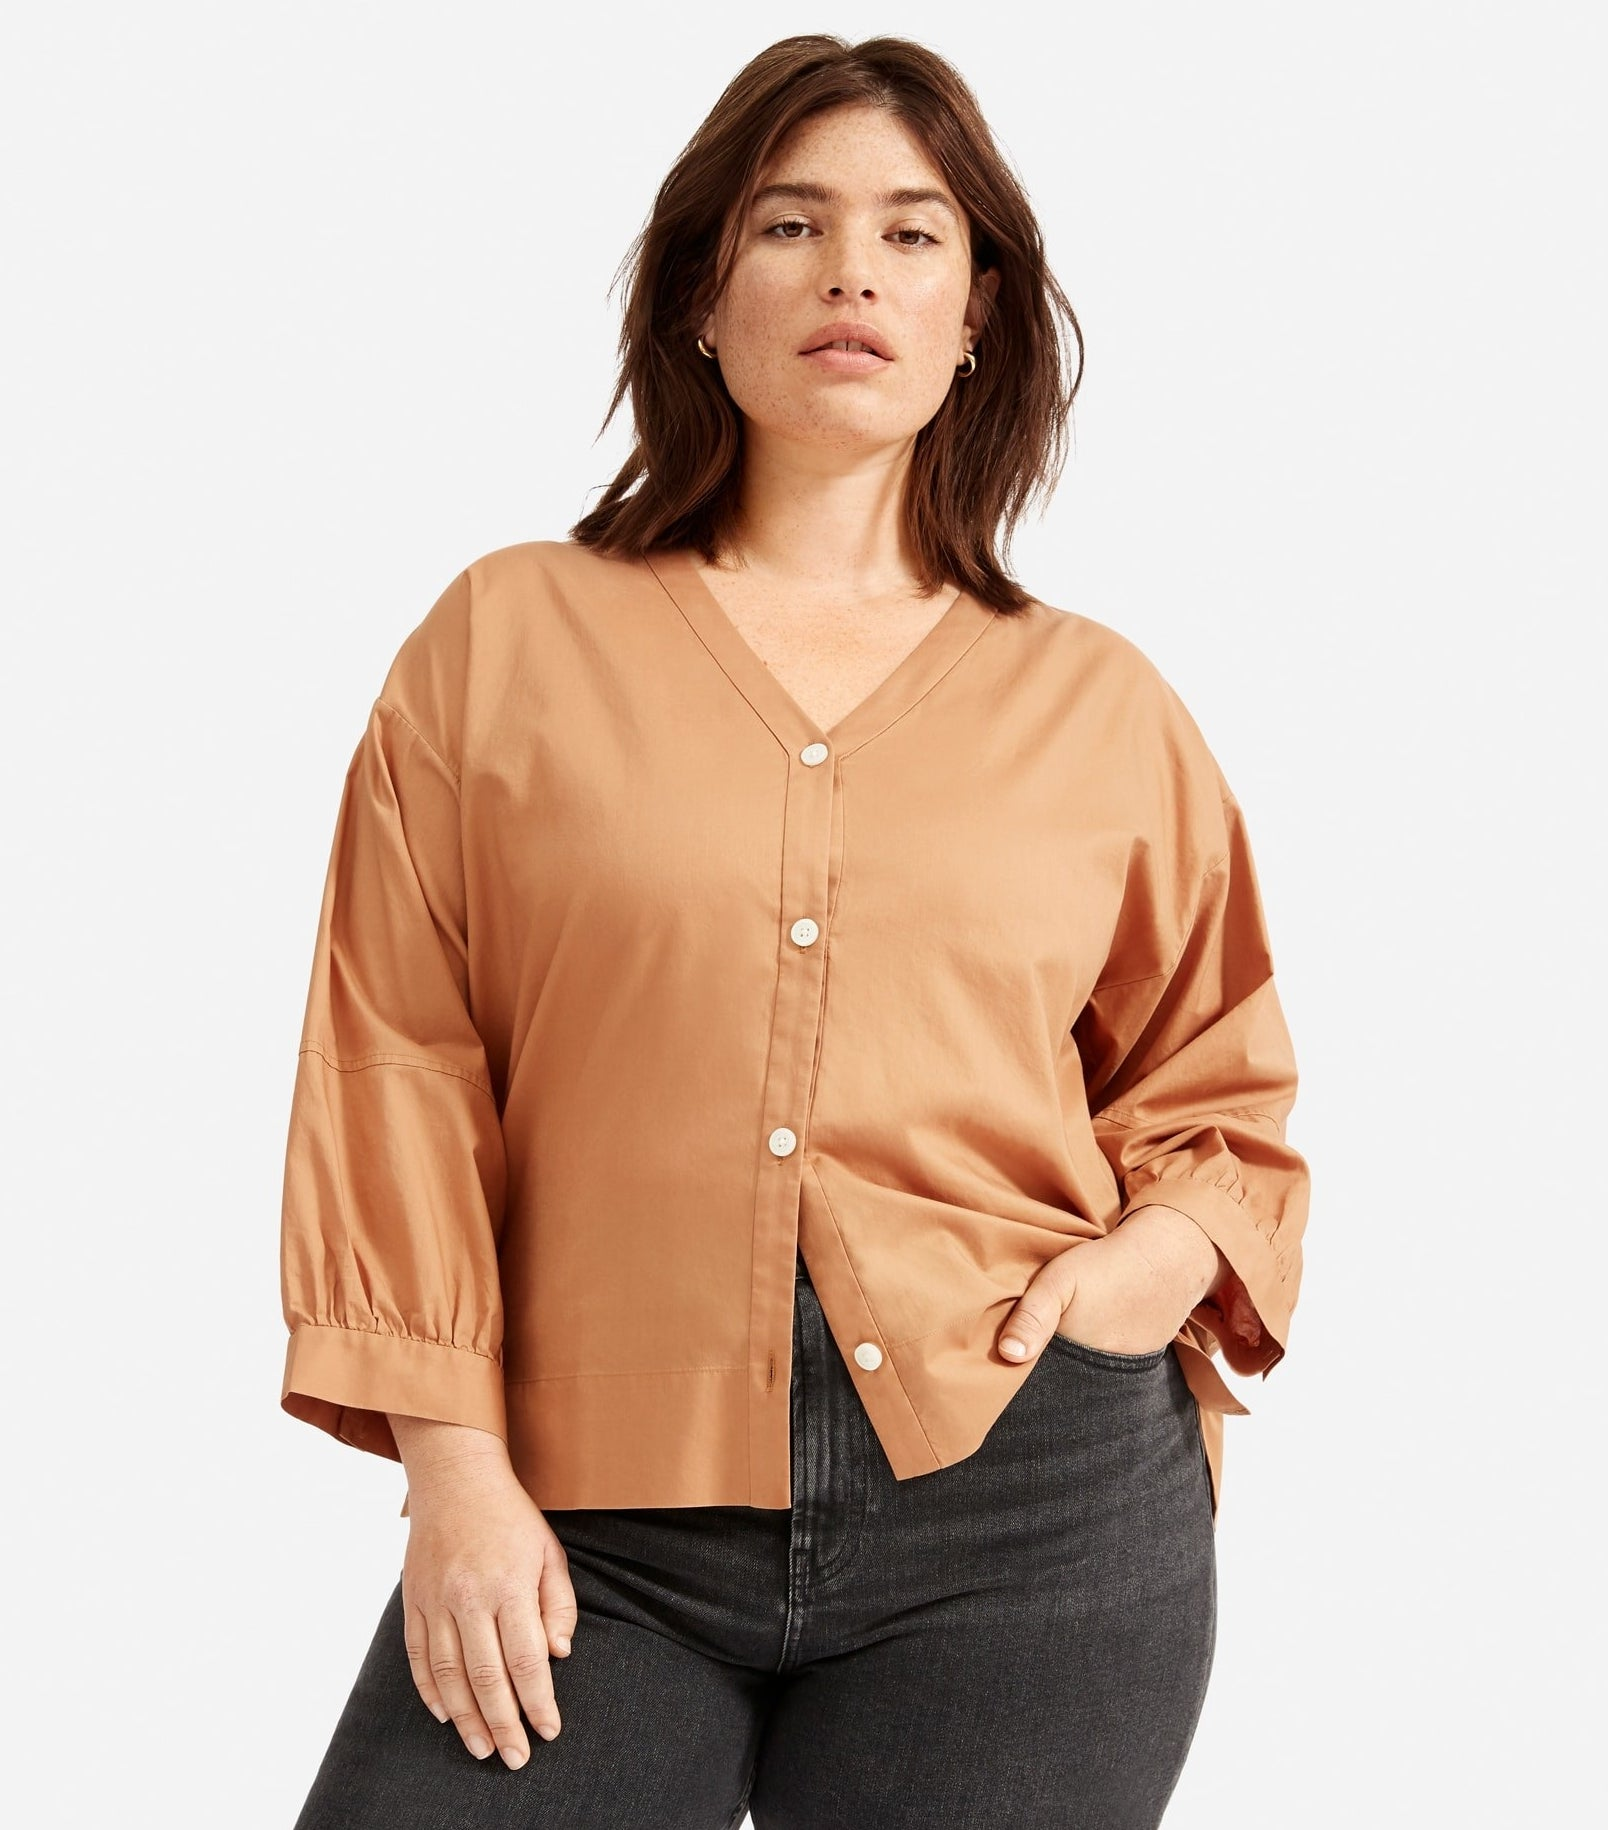 model in light orange button-up top with a V-neck, no collar and slight balloon sleeves